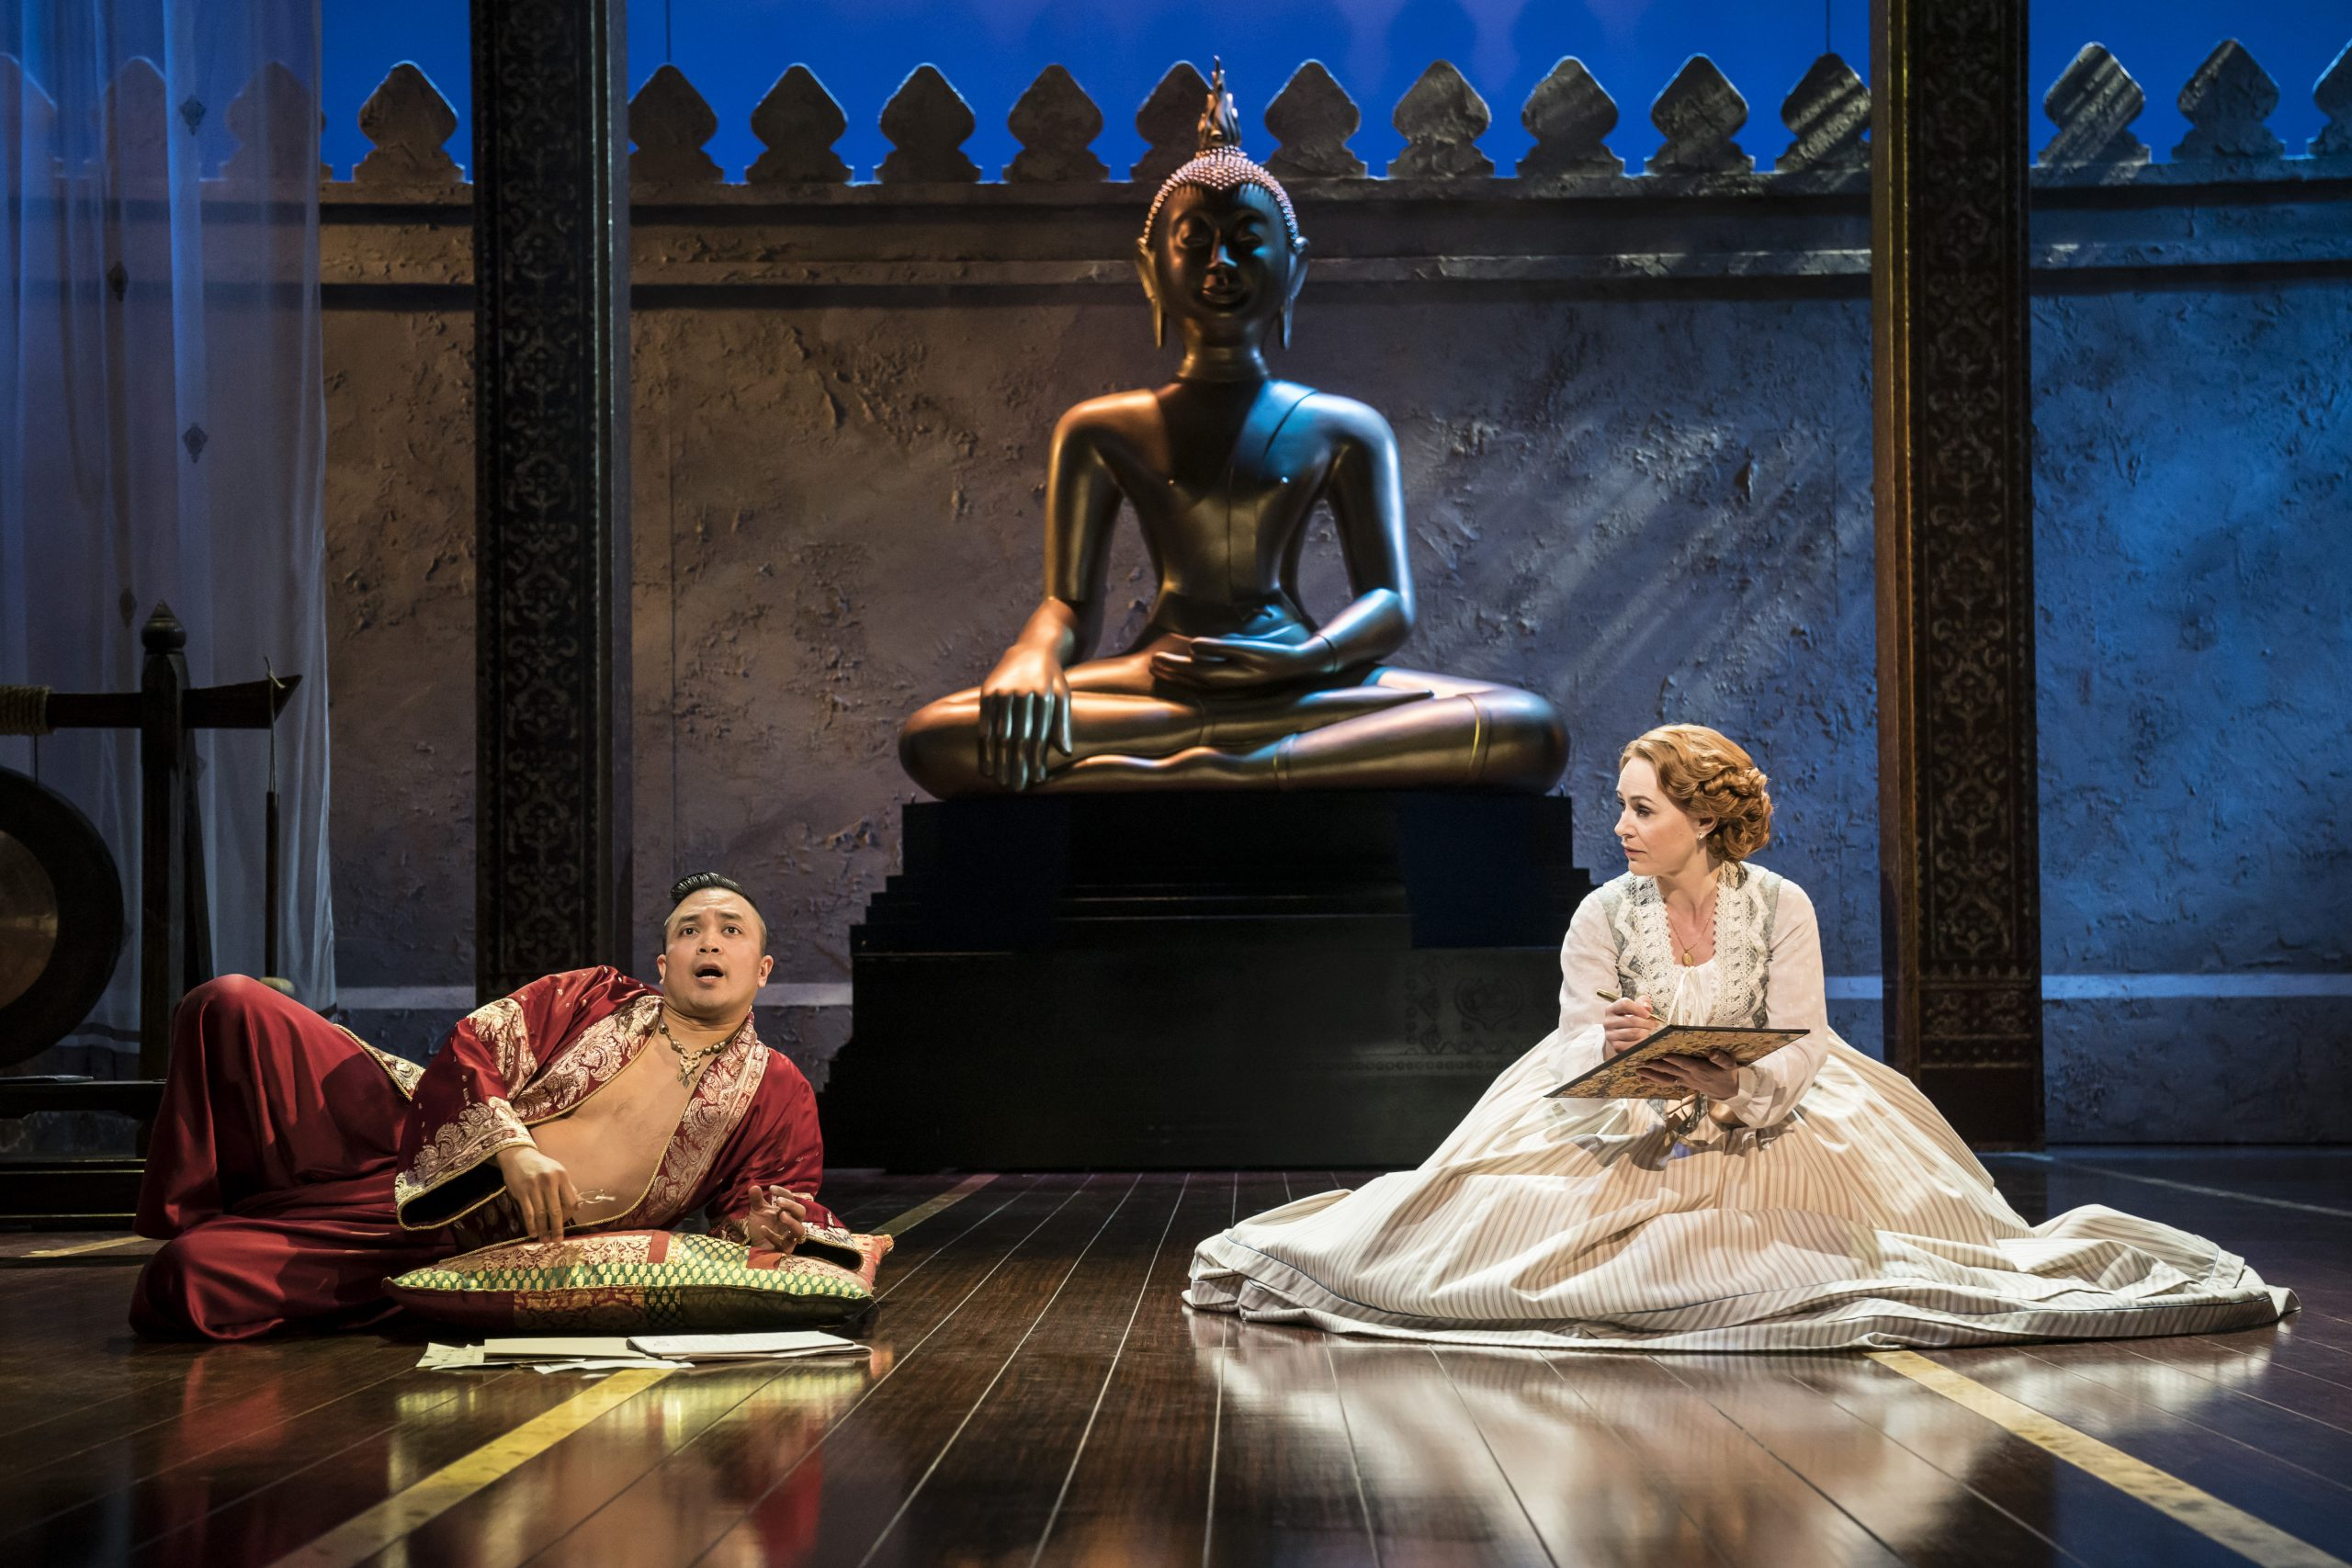 The King and I. Bartlett Sher's interpretation of Rodgers' & Hammerstein's classic. The King of Siam and Anna getting to know each other by mirroring each others' positions on the floor.